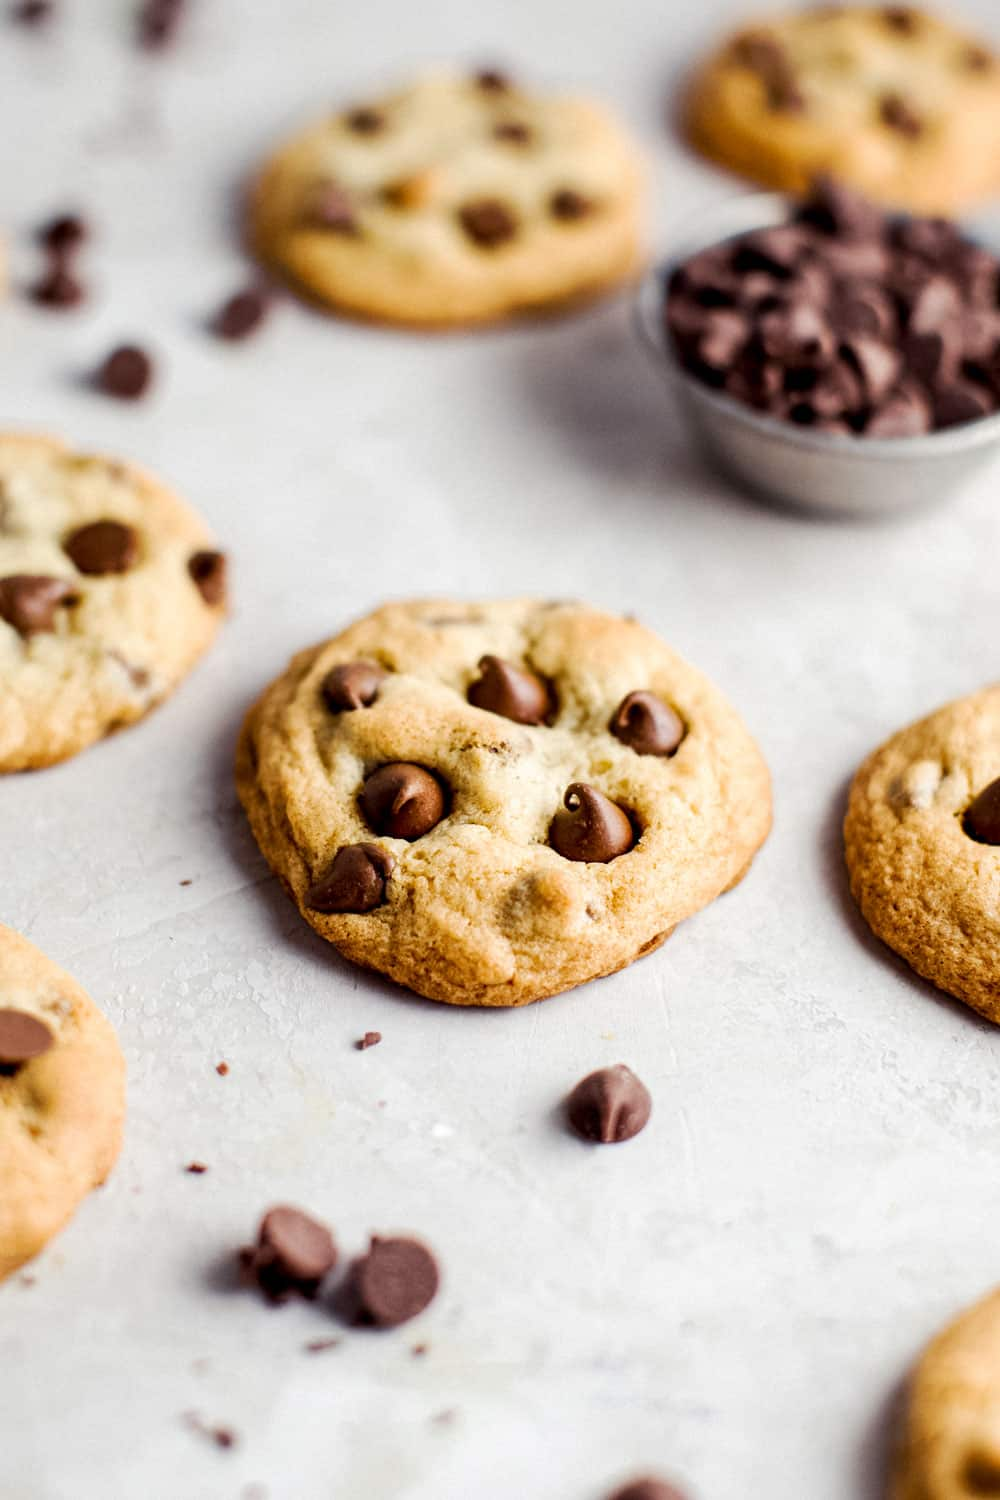 Pudding cookies on a table with chocolate chips